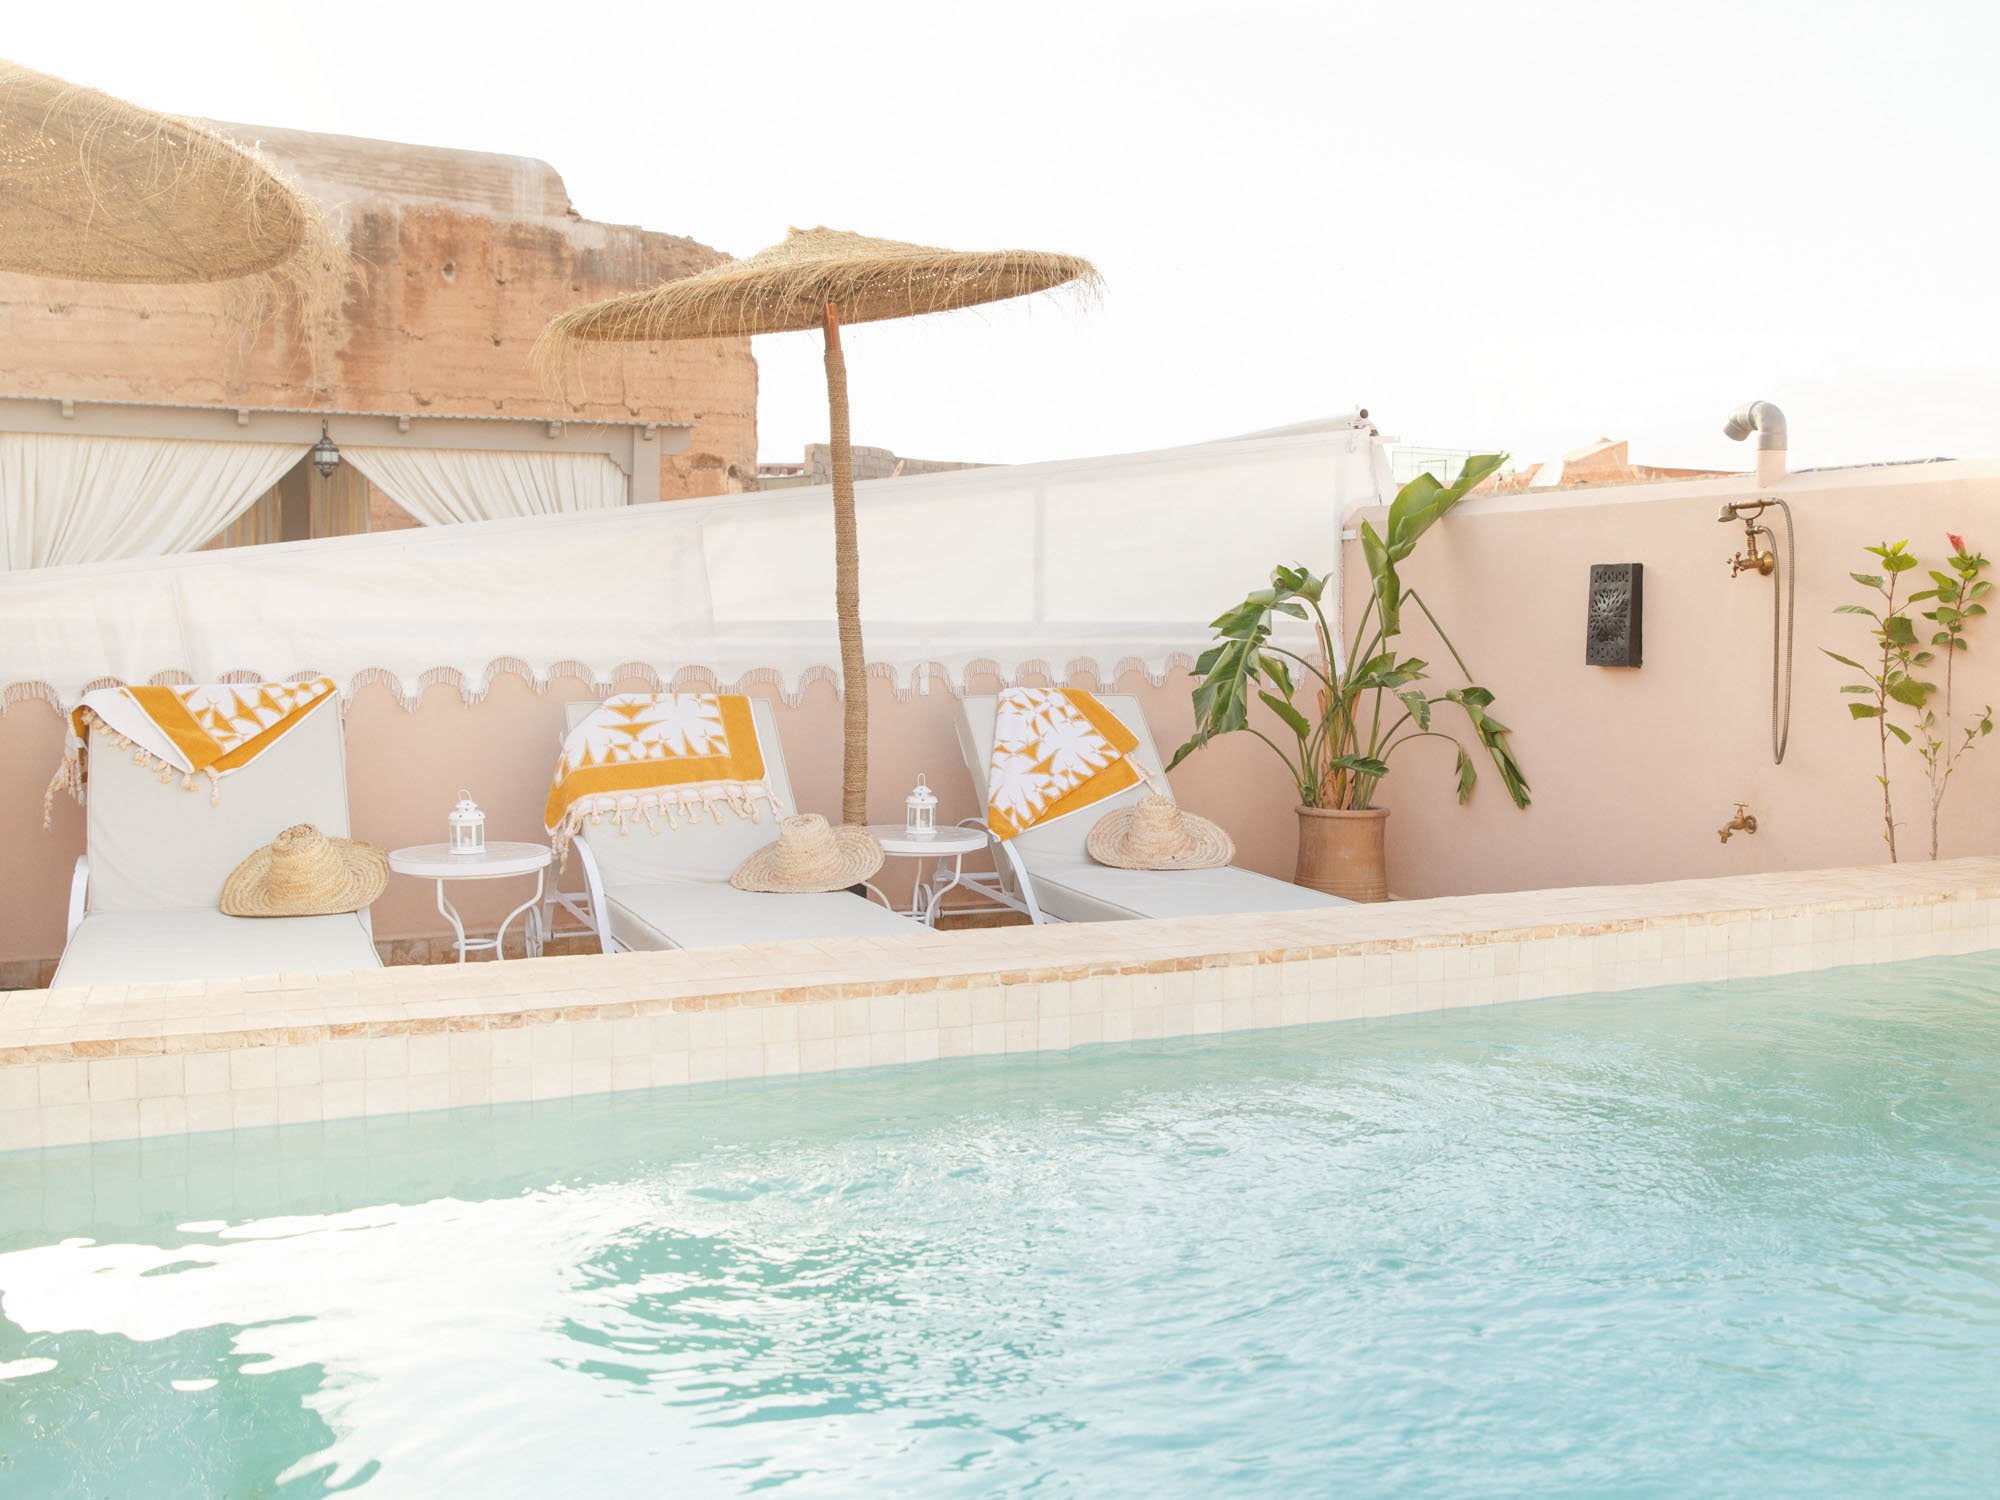 Rooftop Swimming Pool at Luxury Riad Hotel, featuring Sun loungers, Side tables, towels, sunshade, straw hats and potted broad leaf plant